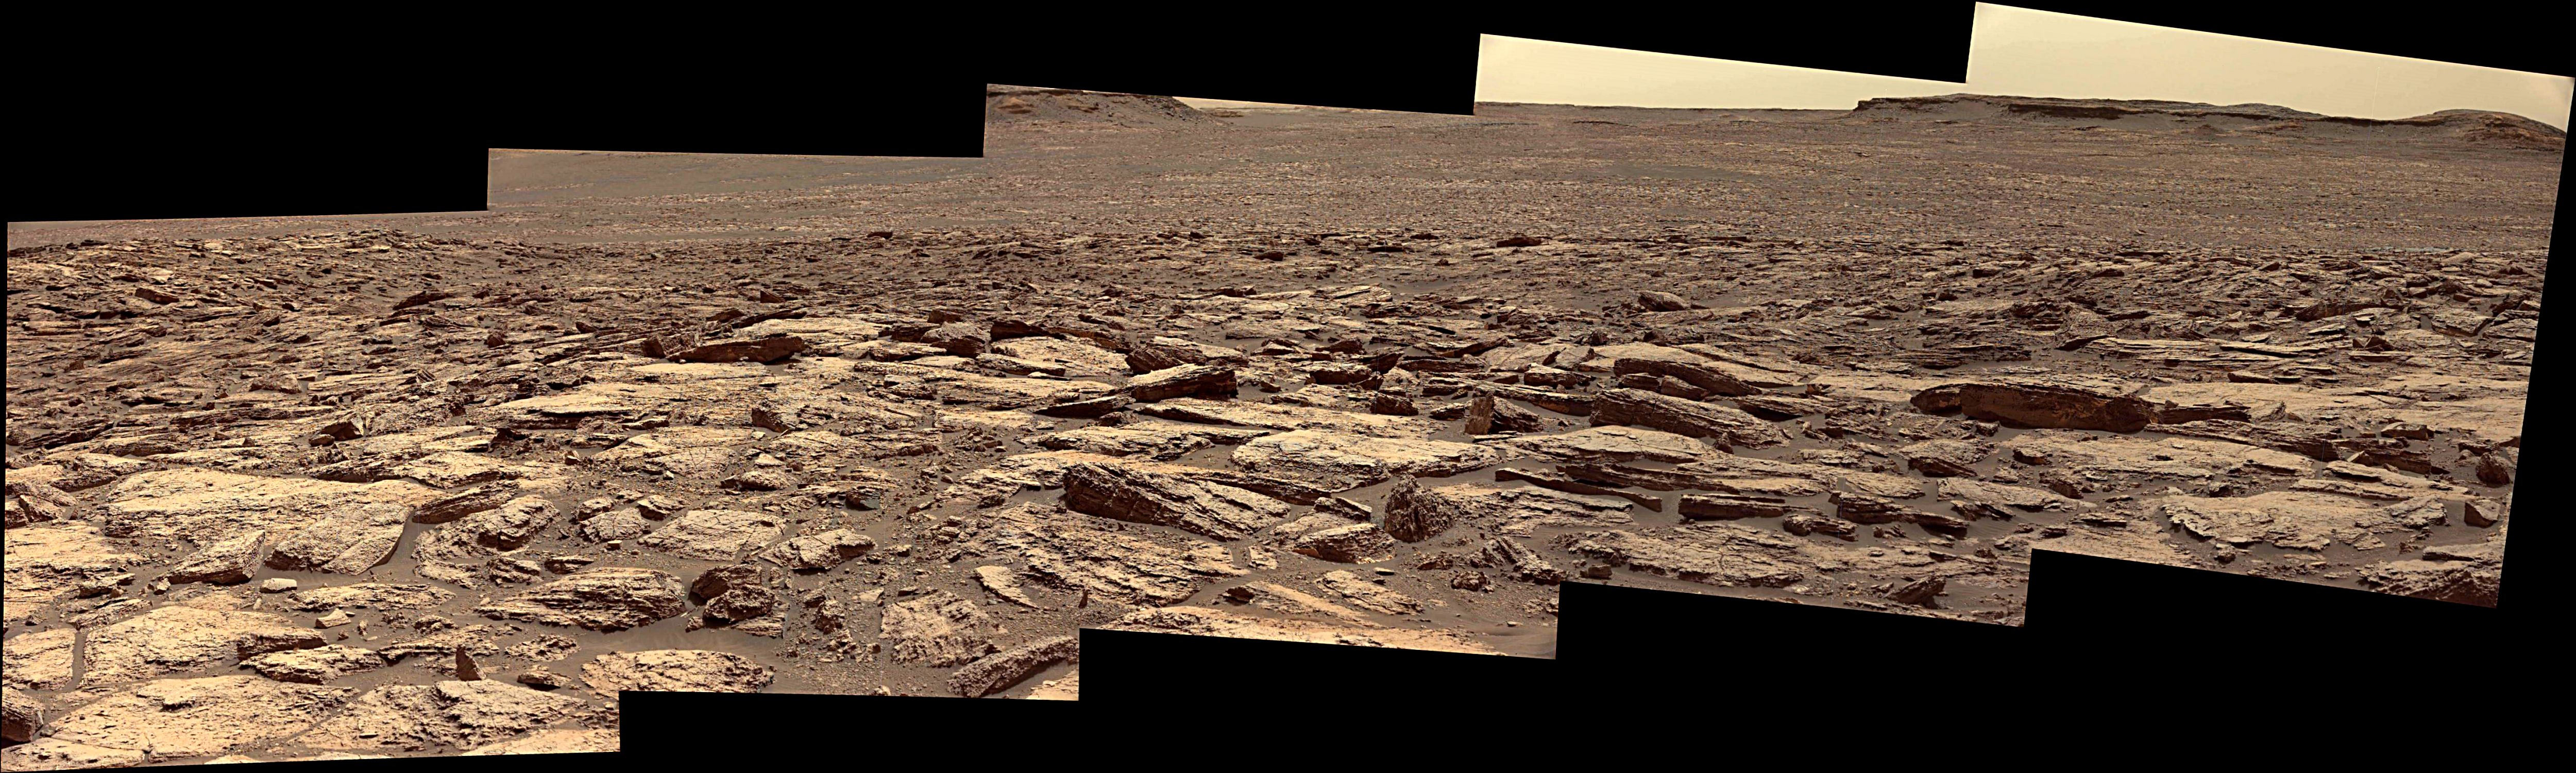 panoramic-curiosity-rover-view-1e-sol-1489-was-life-on-mars